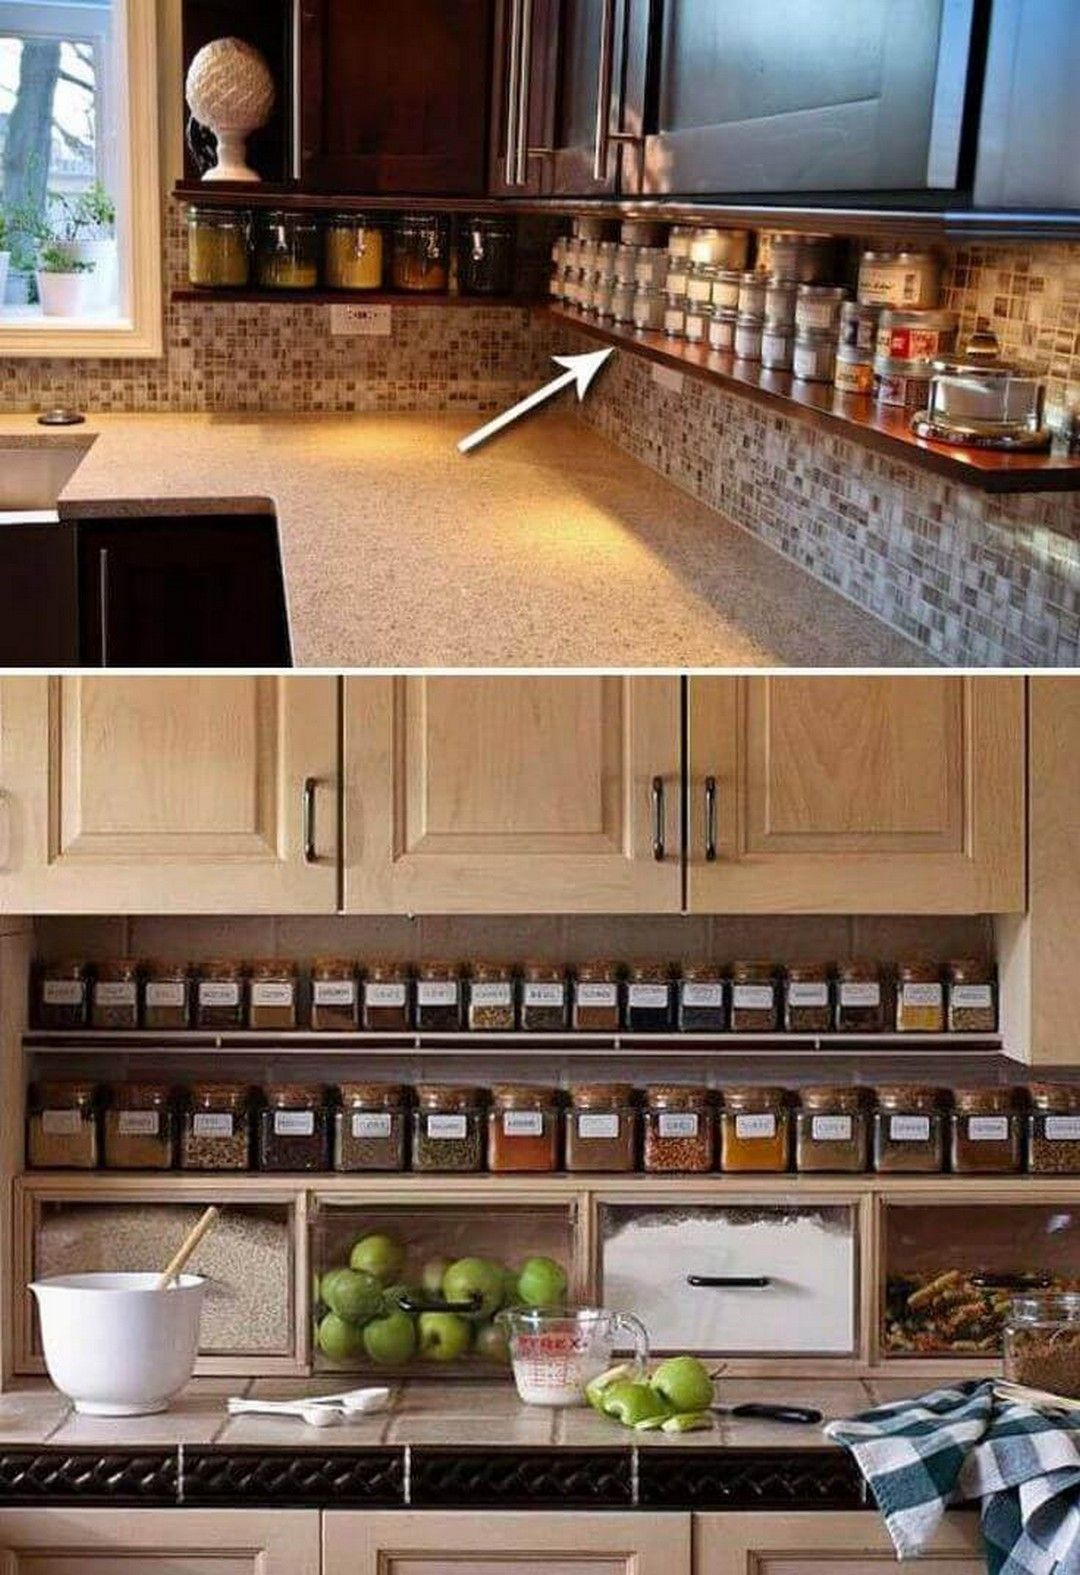 Kleine Küche Hacks Small Kitchen Remodel And Storage Hacks On A Budget Кухня Kleine